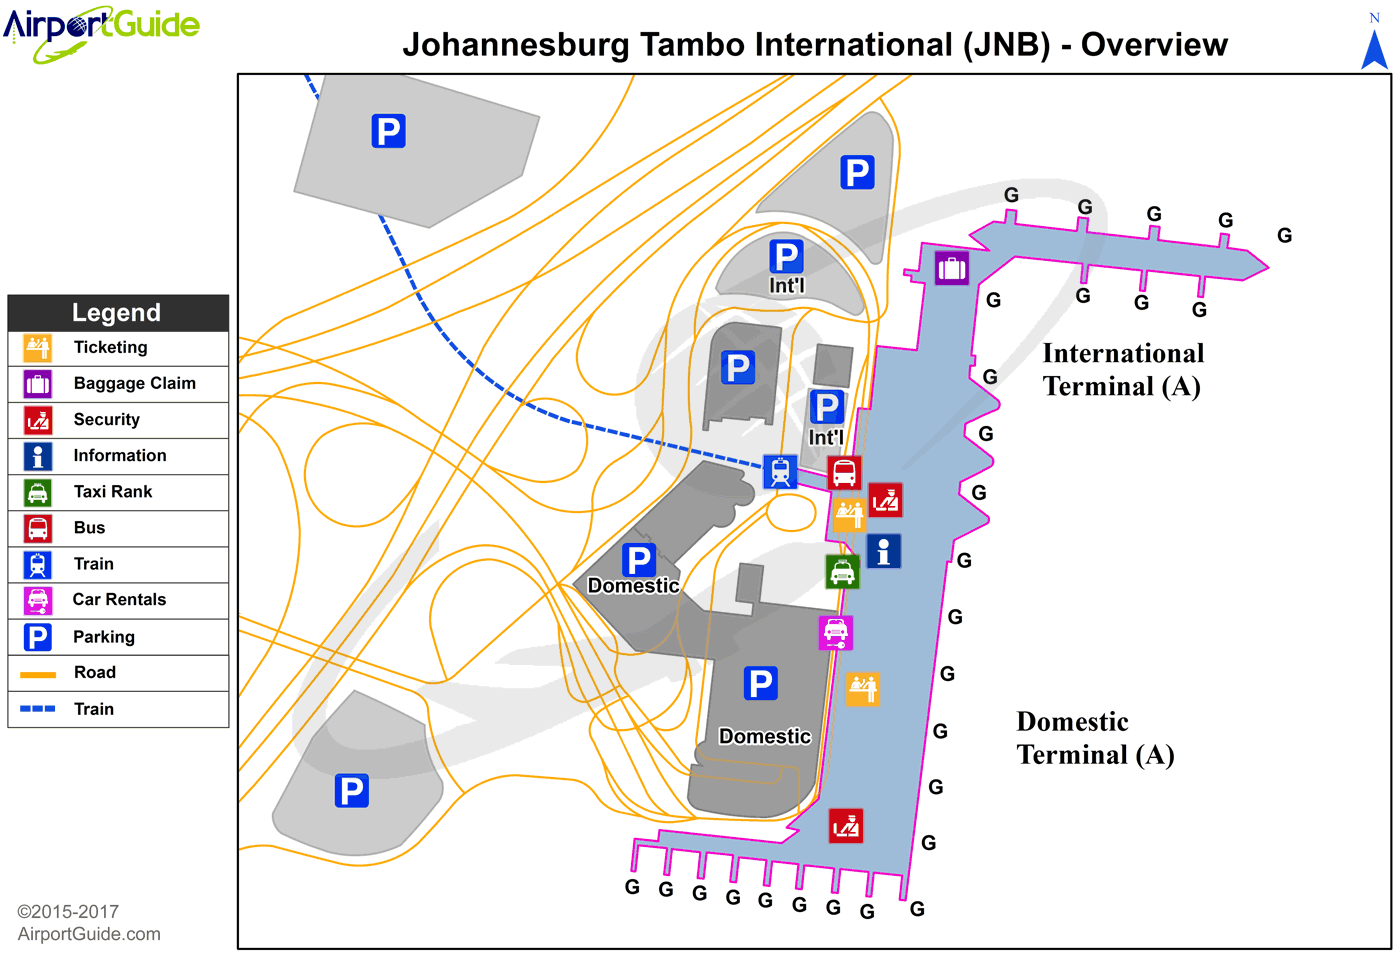 Johannesburg OR Tambo International (JNB) Airport